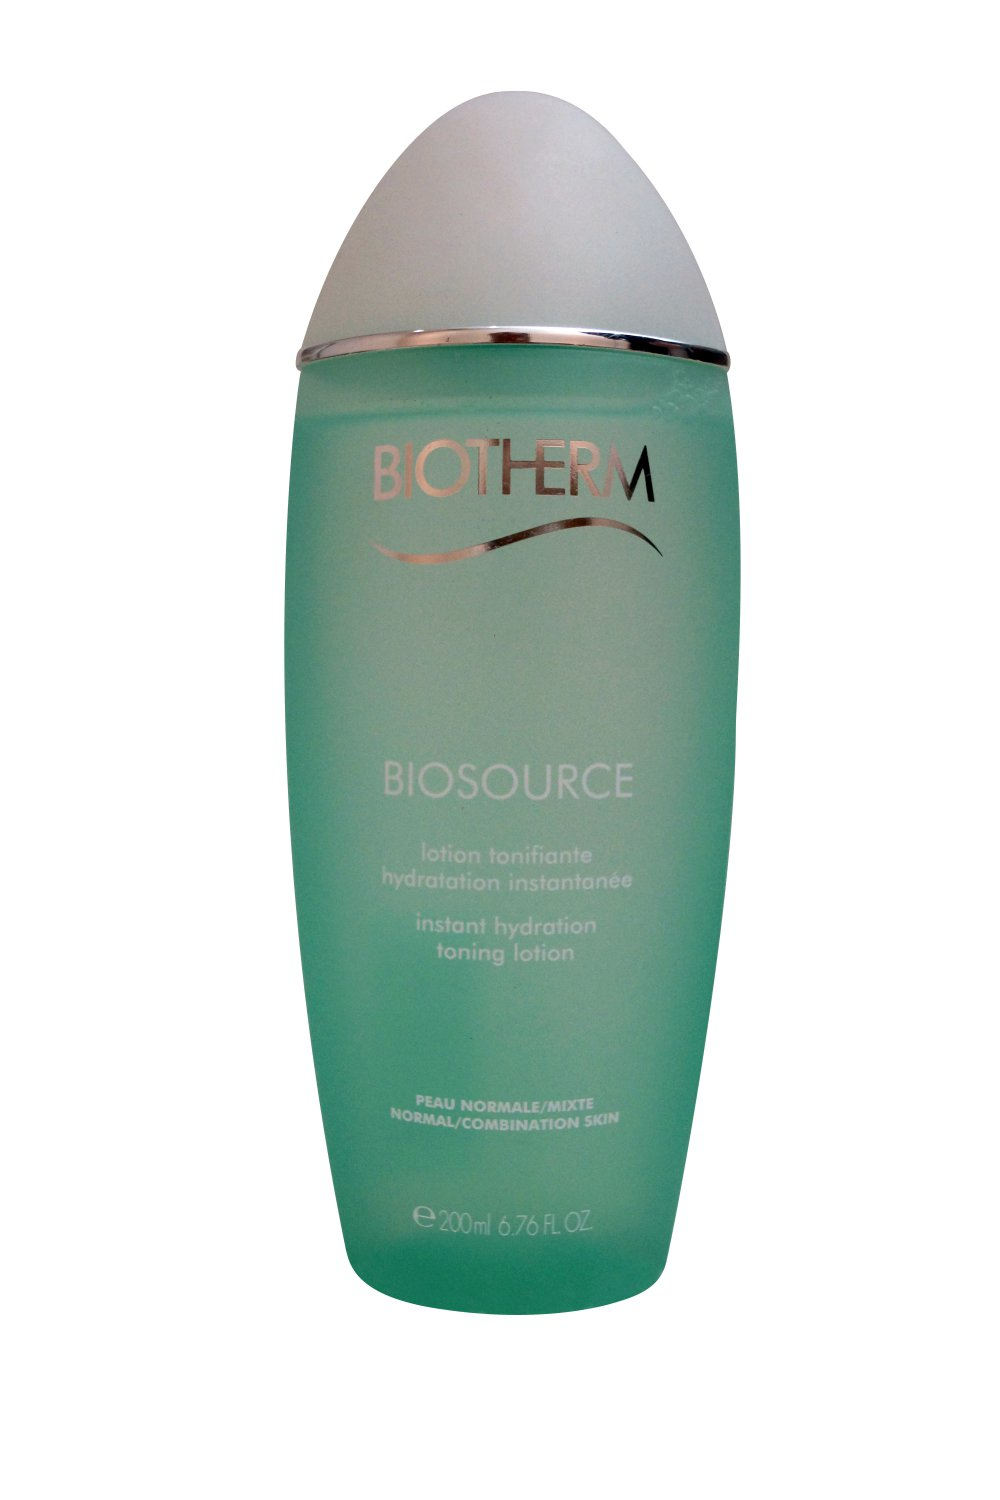 Biotherm Biosource Lotion Hydrating Toner Normal & Combination Skin 6.7 oz